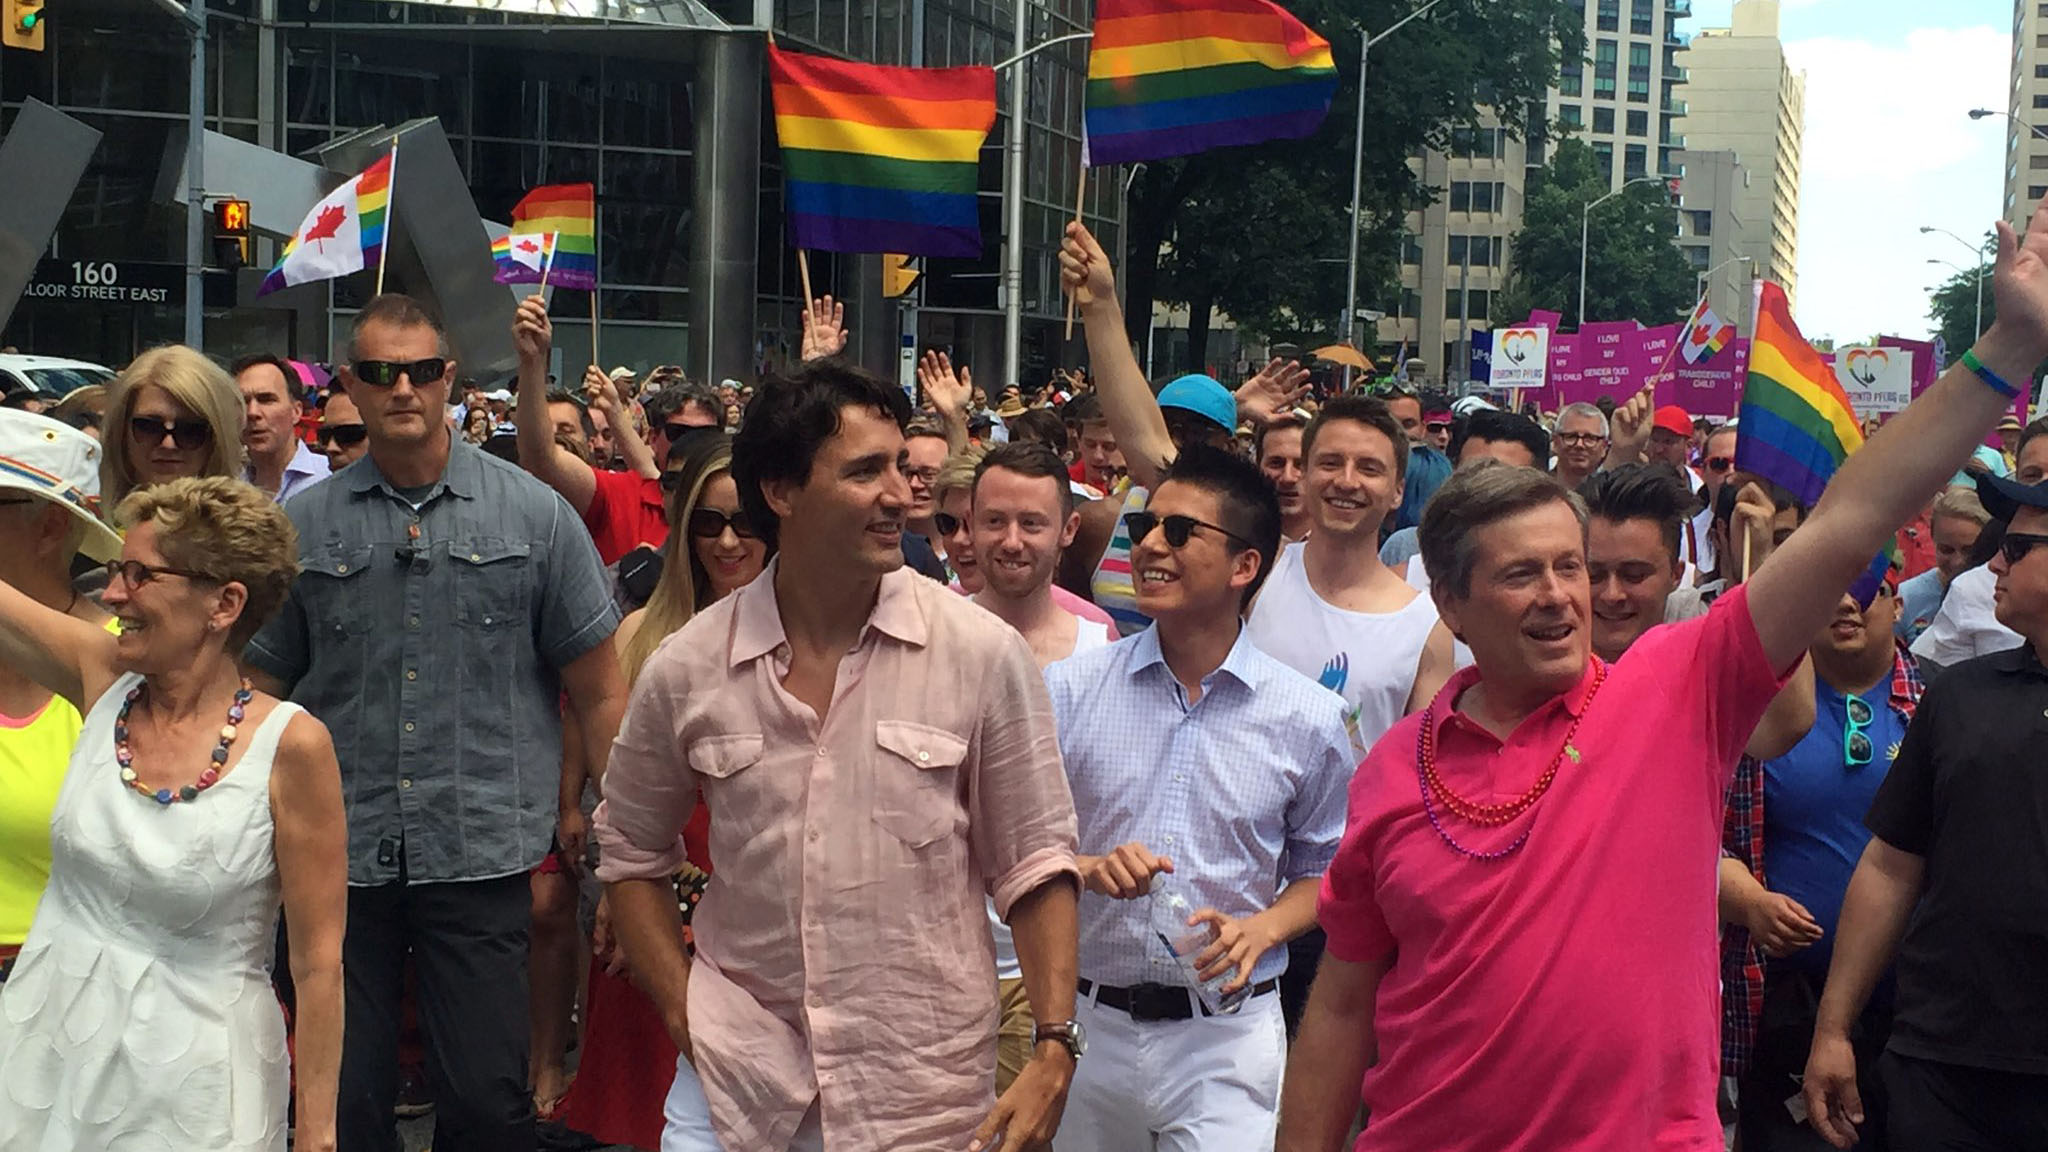 Justin Trudeau to march in Toronto Pride parade today